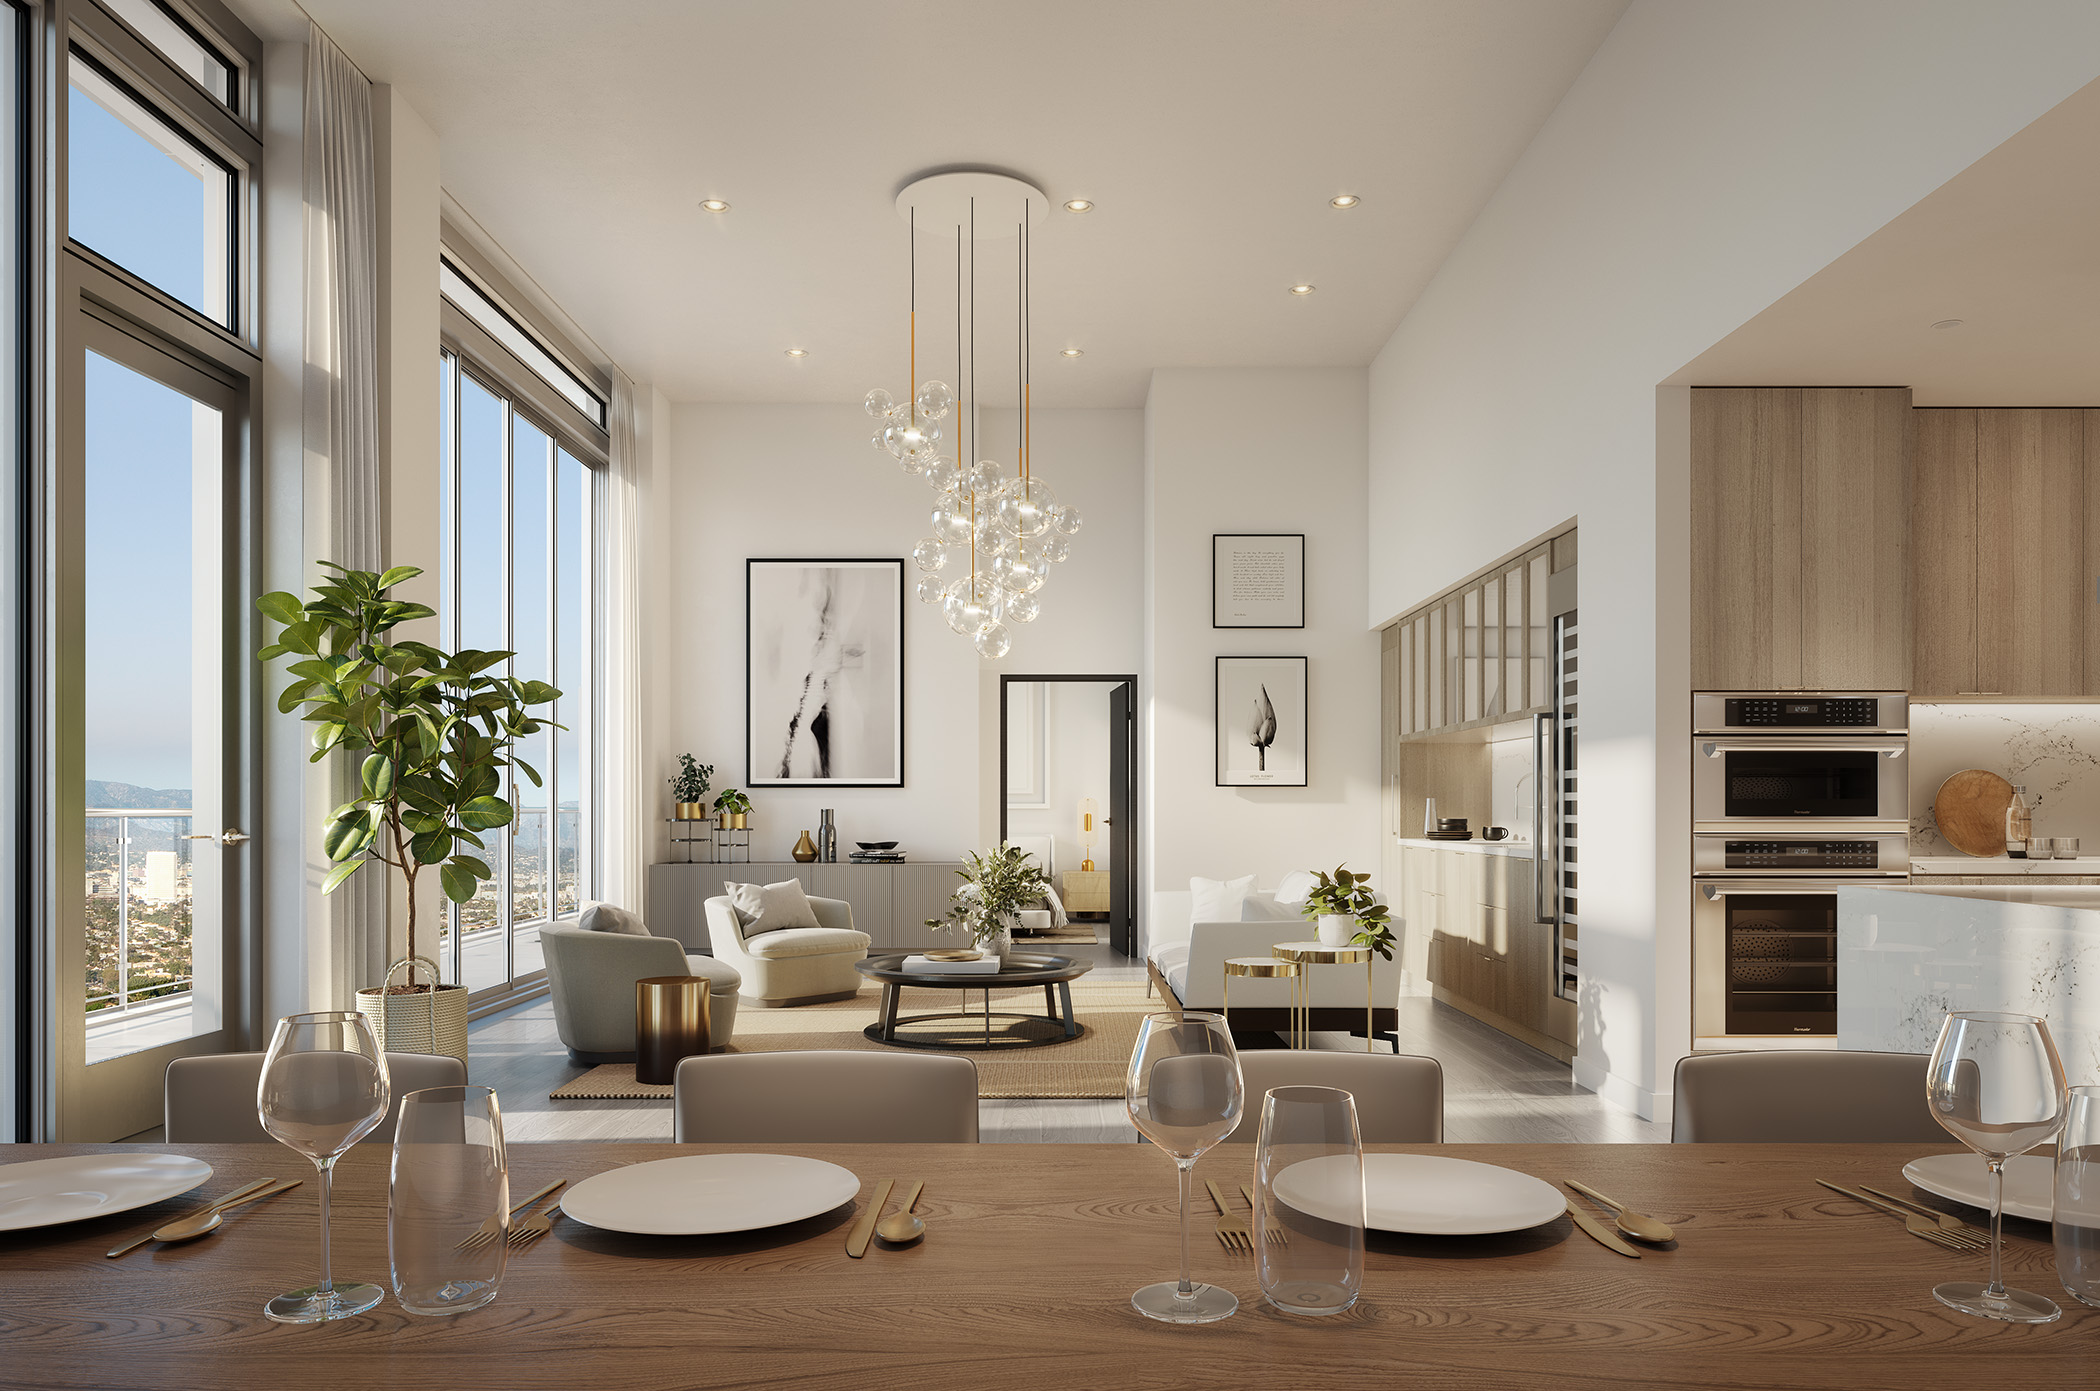 Interior of modern apartment with high ceilings, open kitchen, dining and living room.